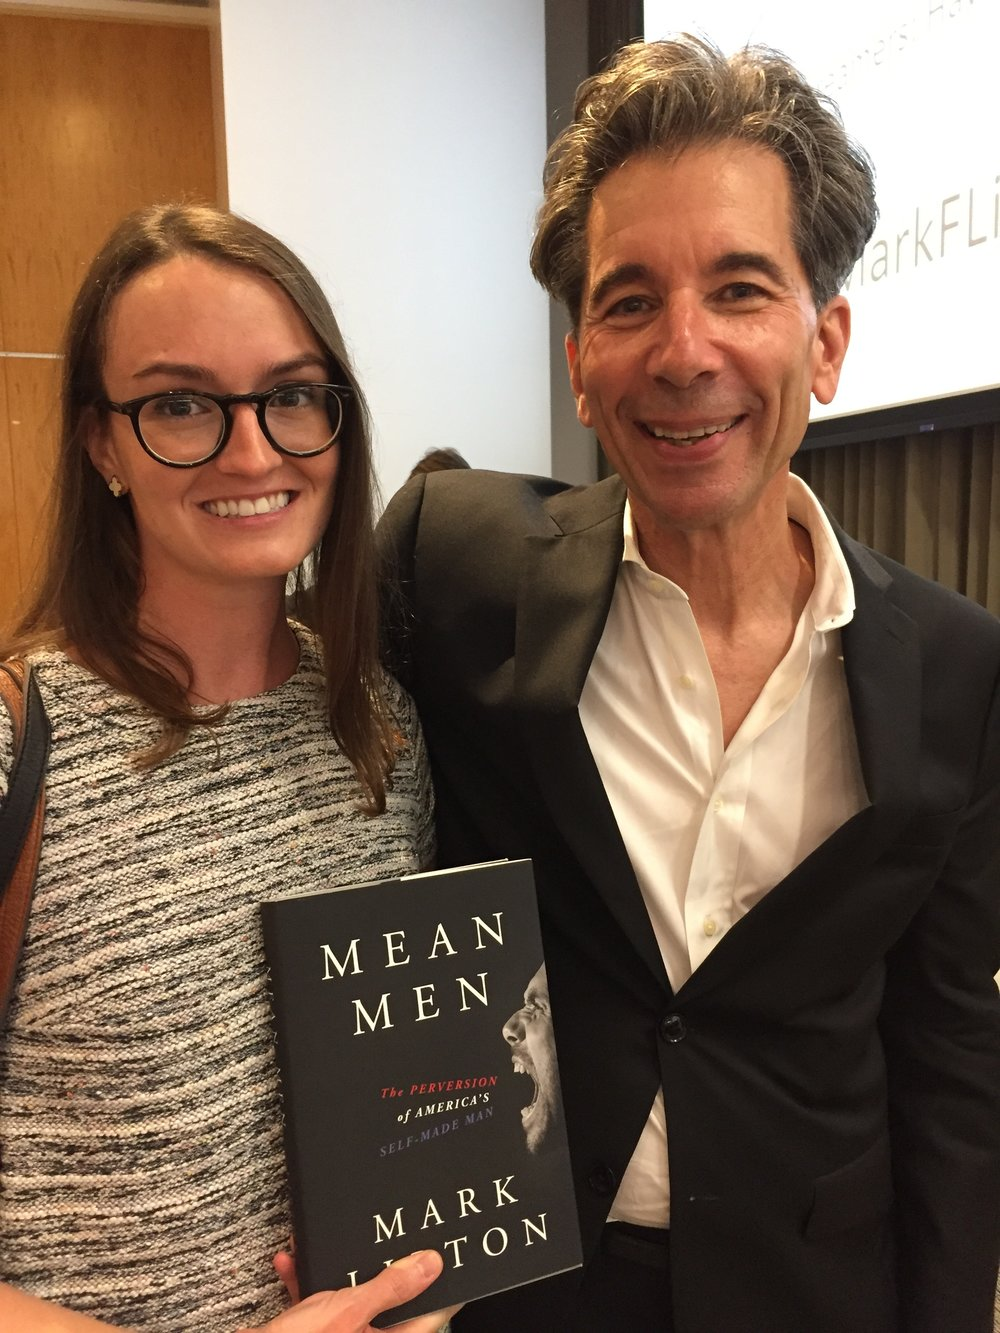 Production editor Nicole with author Mark Lipton at the NYC launch of Mean Men, September 5, 2017